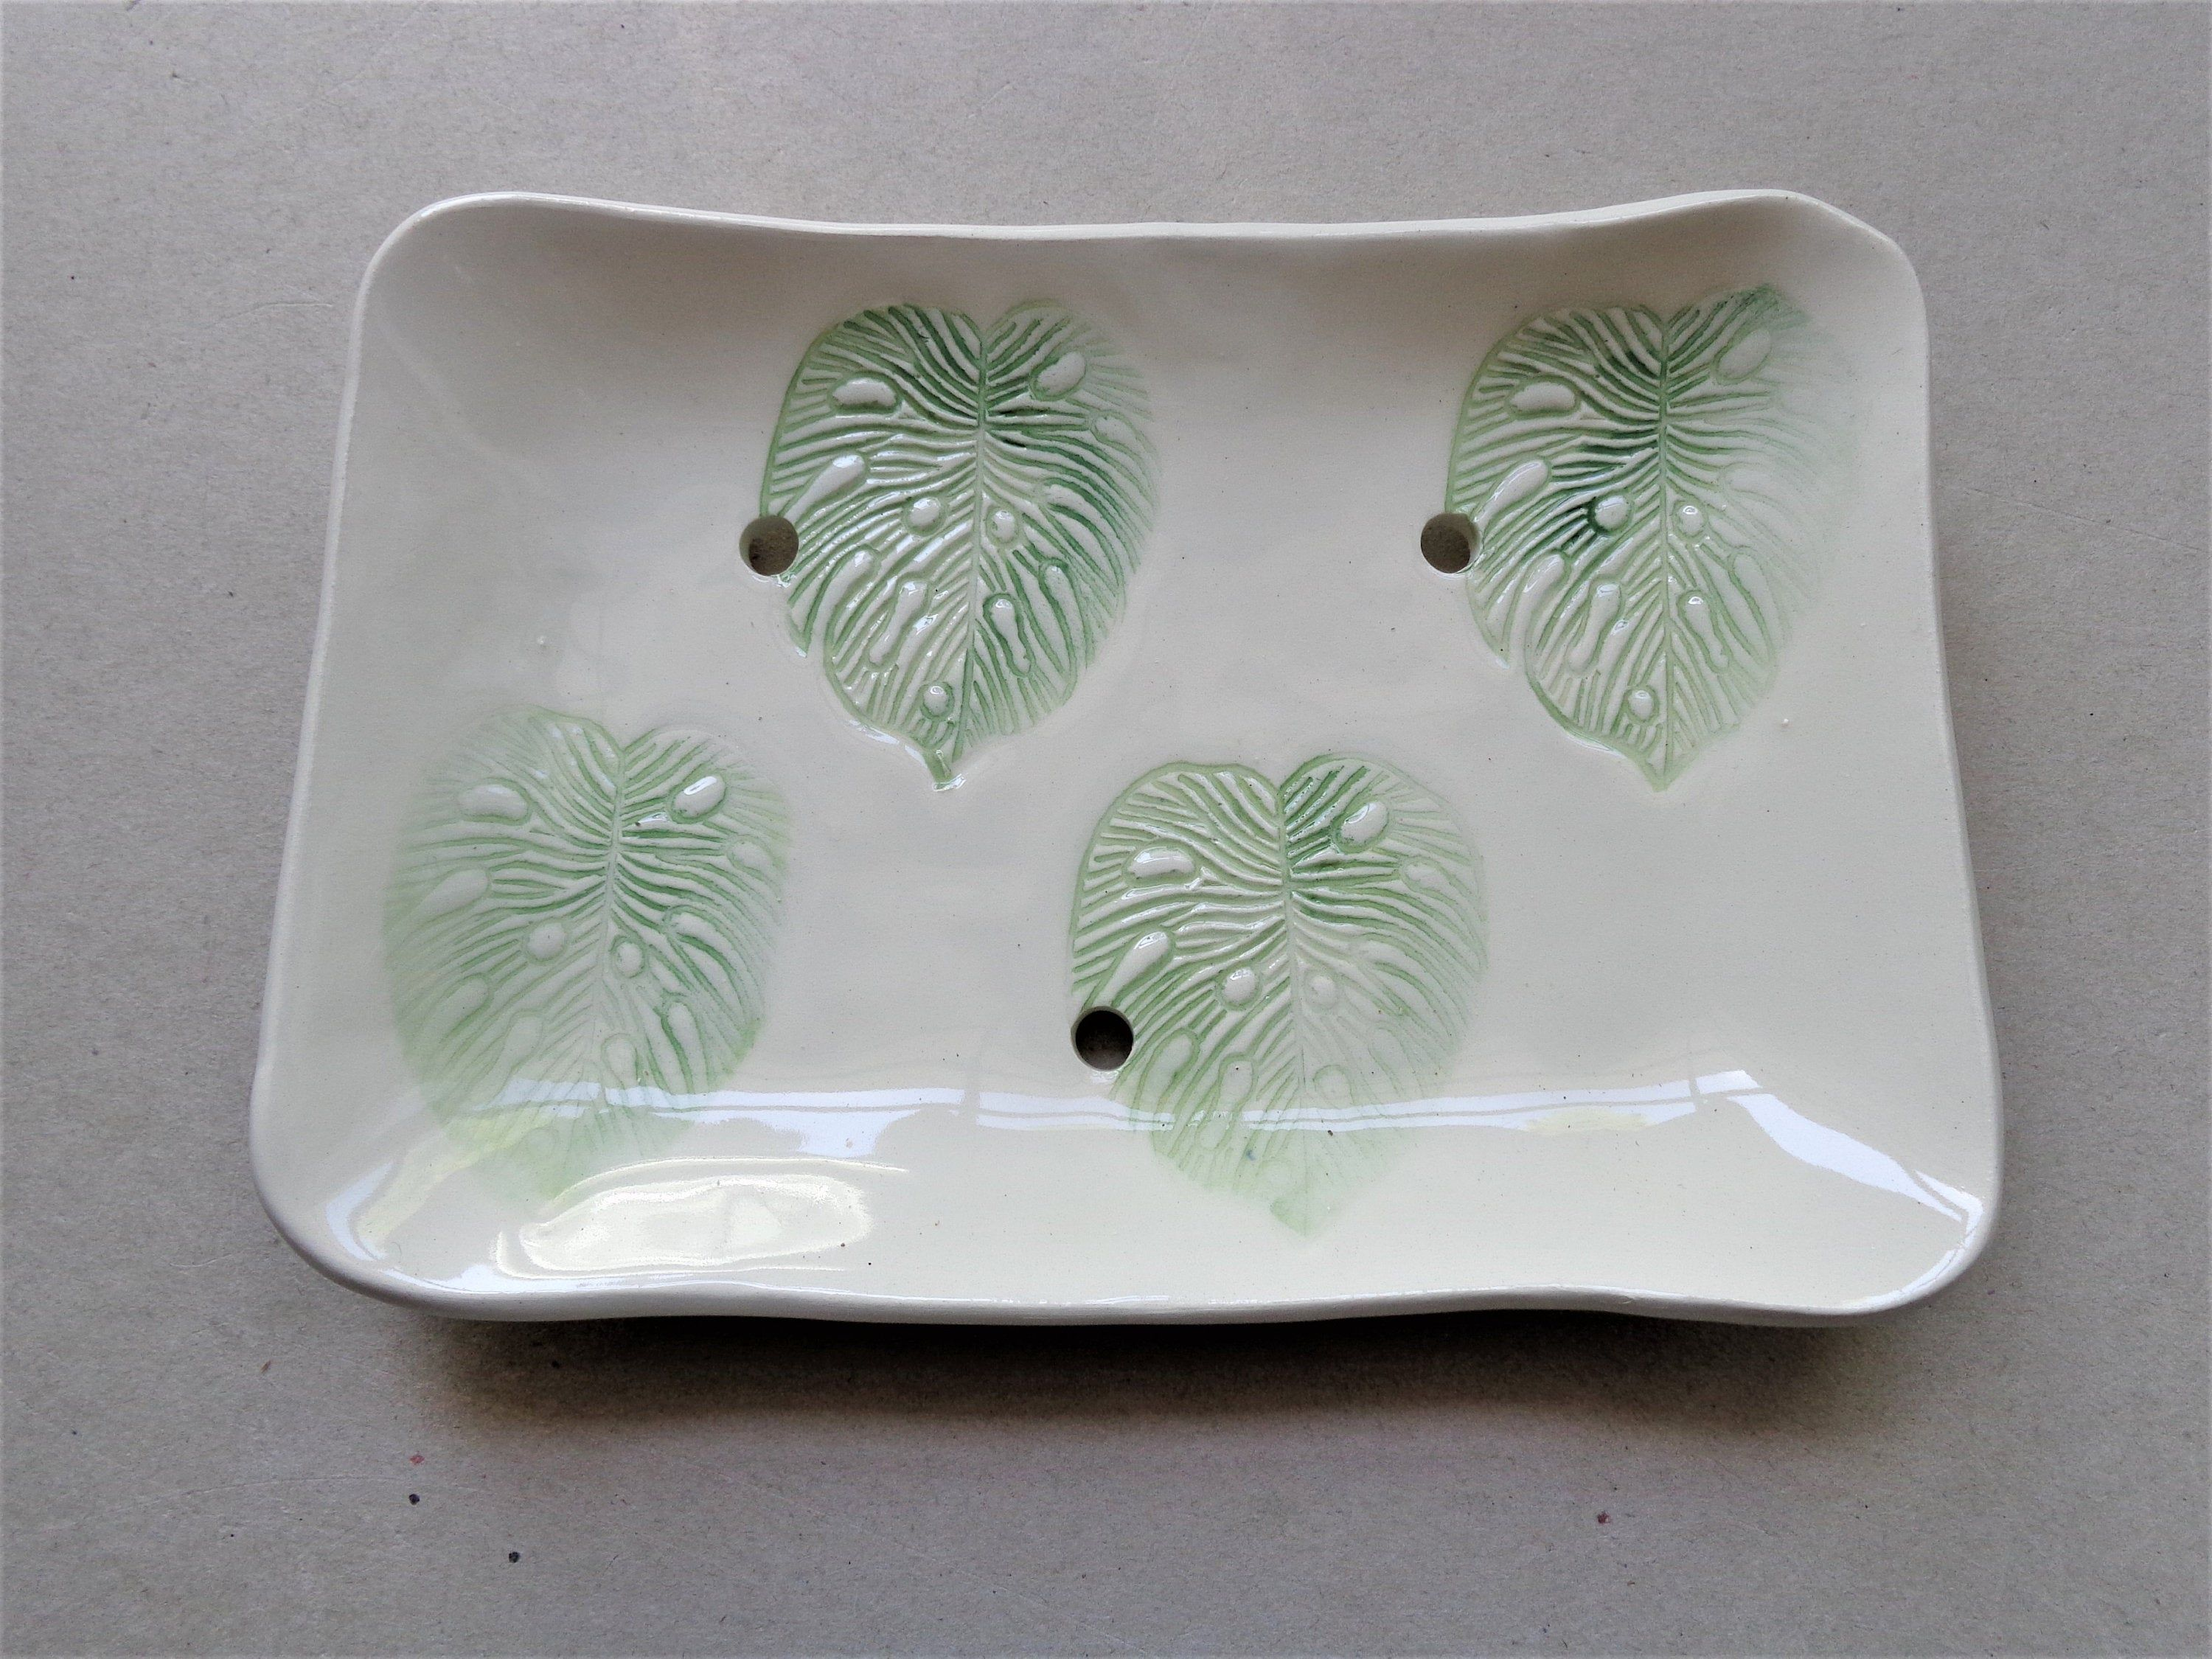 Monstera Leaf Soap Dish Ceramic Tropical Green White Footed Earthenware Pottery Soap Holder With Holes Bathroom Sink Decor Mother S Day Gift Leaf Soap Ceramic Soap Dish Earthenware Pottery